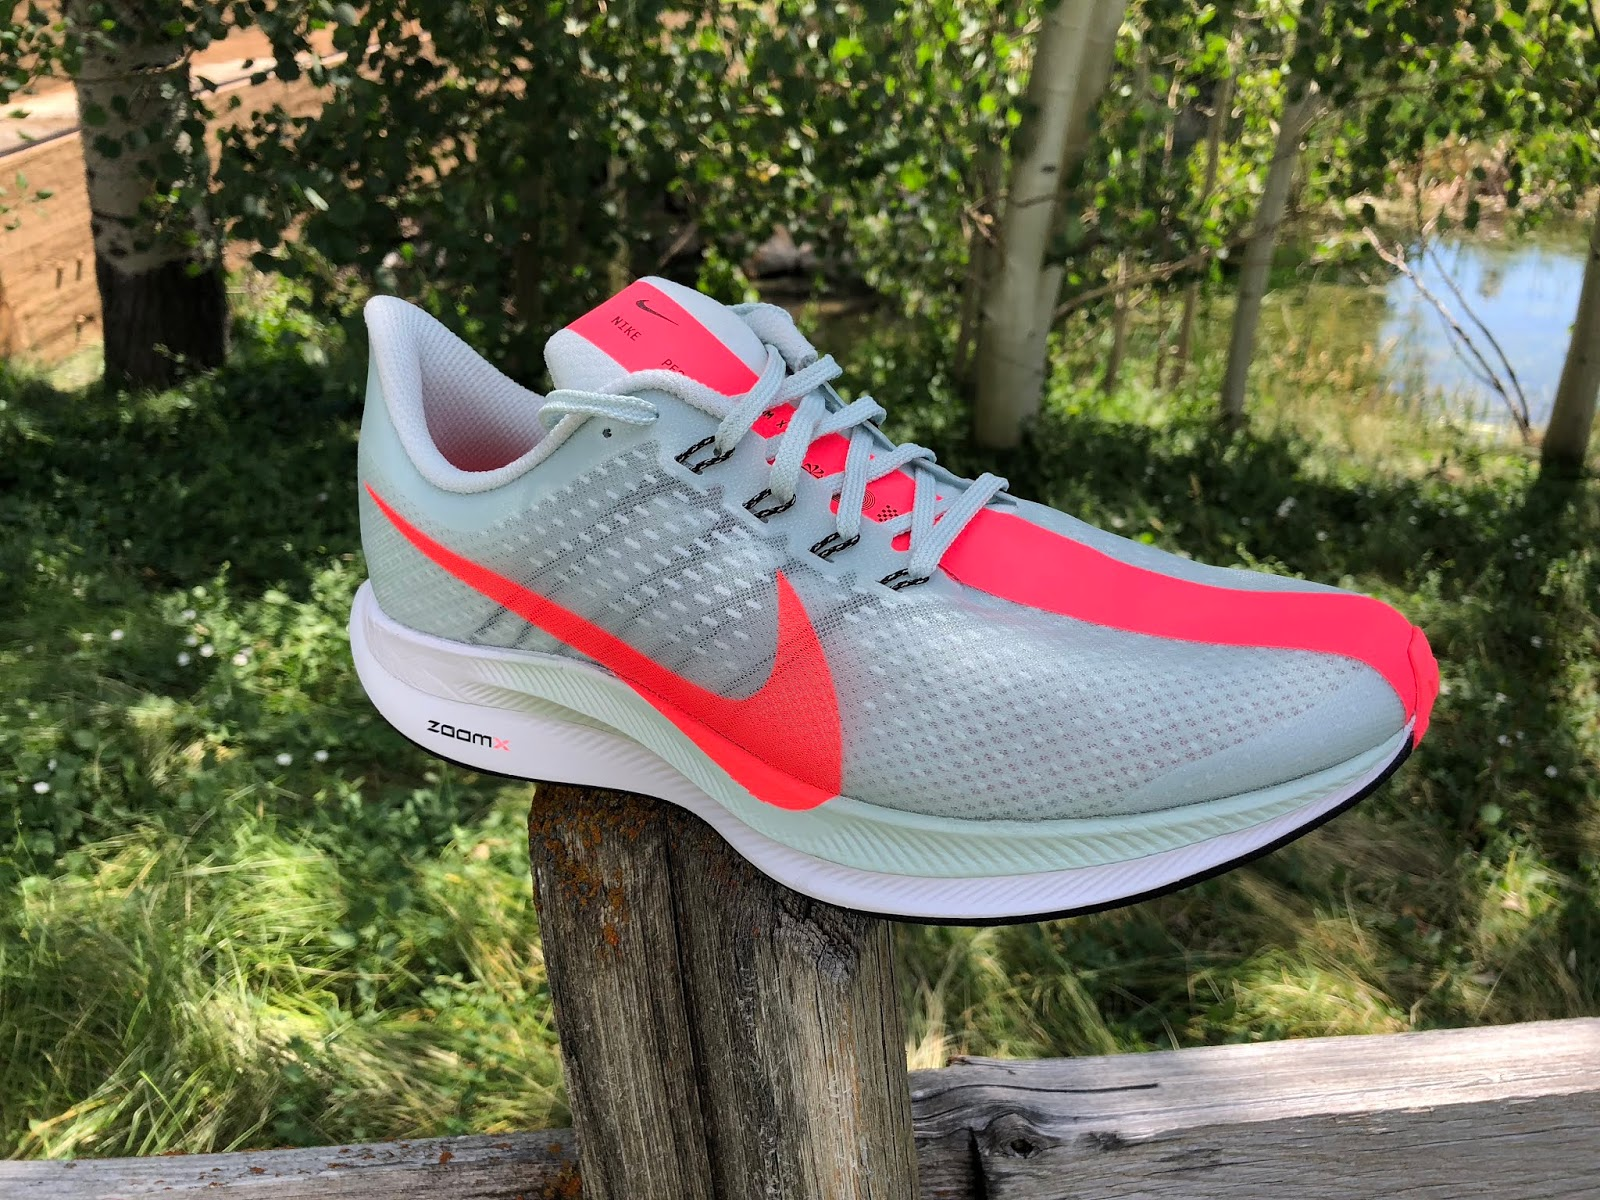 buy cheap new arrivals info for Road Trail Run: Nike Zoom Pegasus Turbo 120 Mile Road Test ...